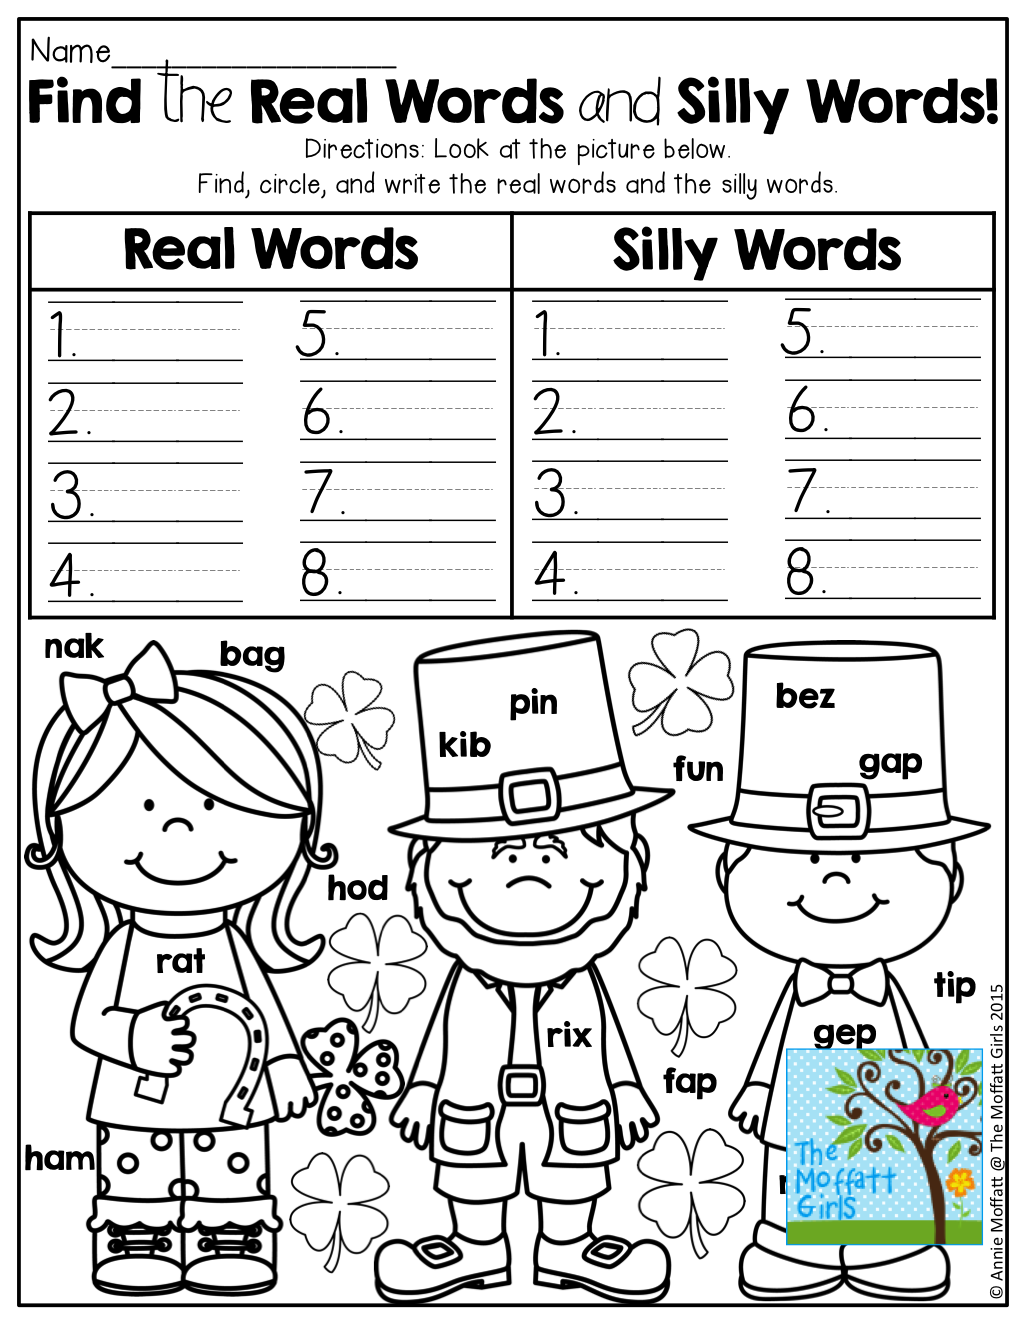 Find And Write Real Words Verses Silly Words Tons Of Fun Printables